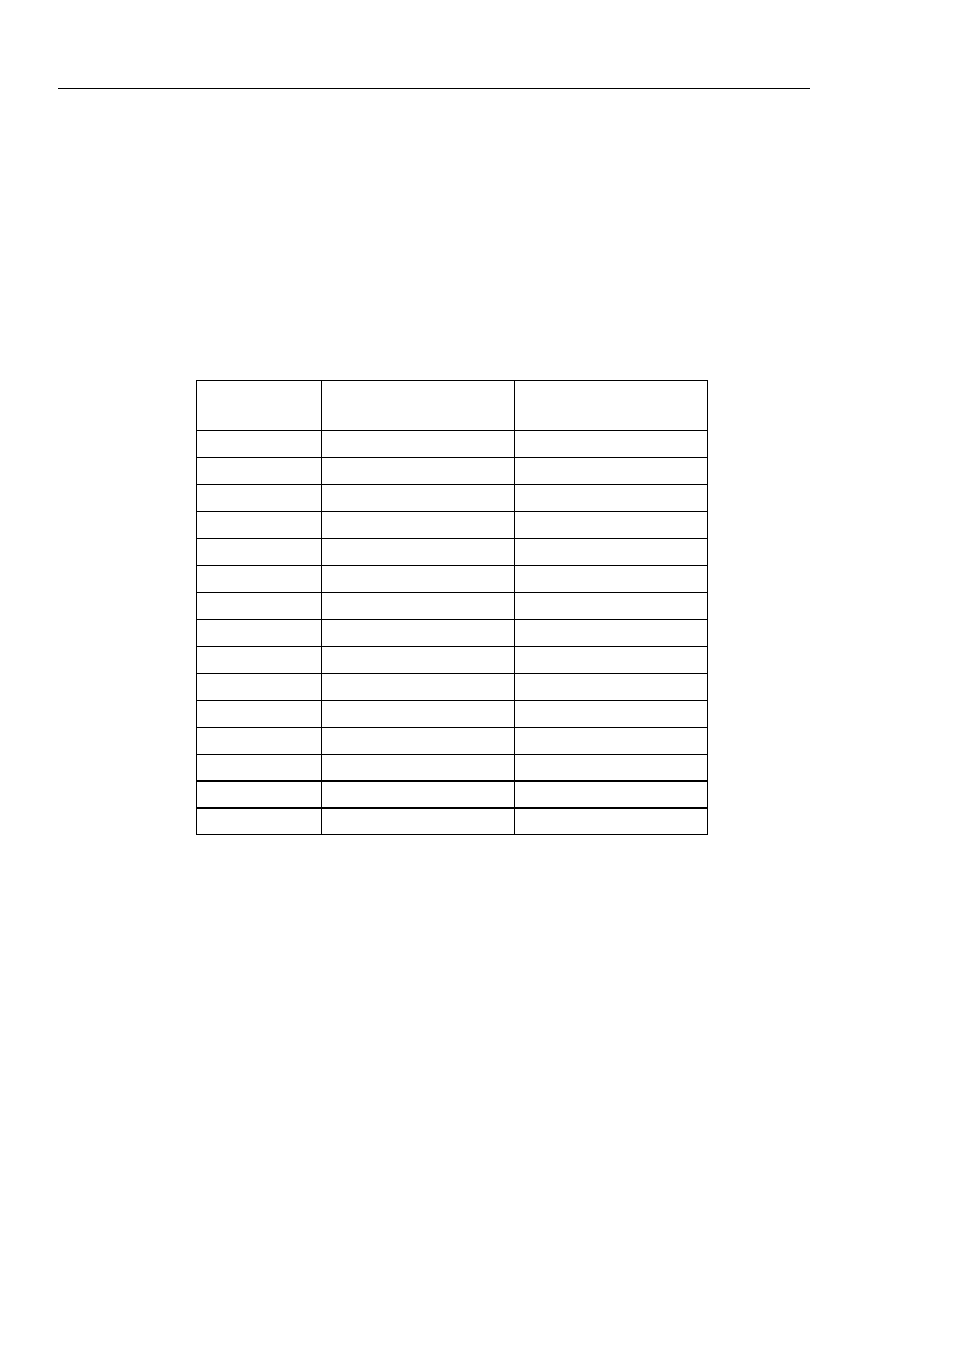 X2 connector, Resolver compatibility | Parker Products ViX250AE User Manual  | Page 43 / 136